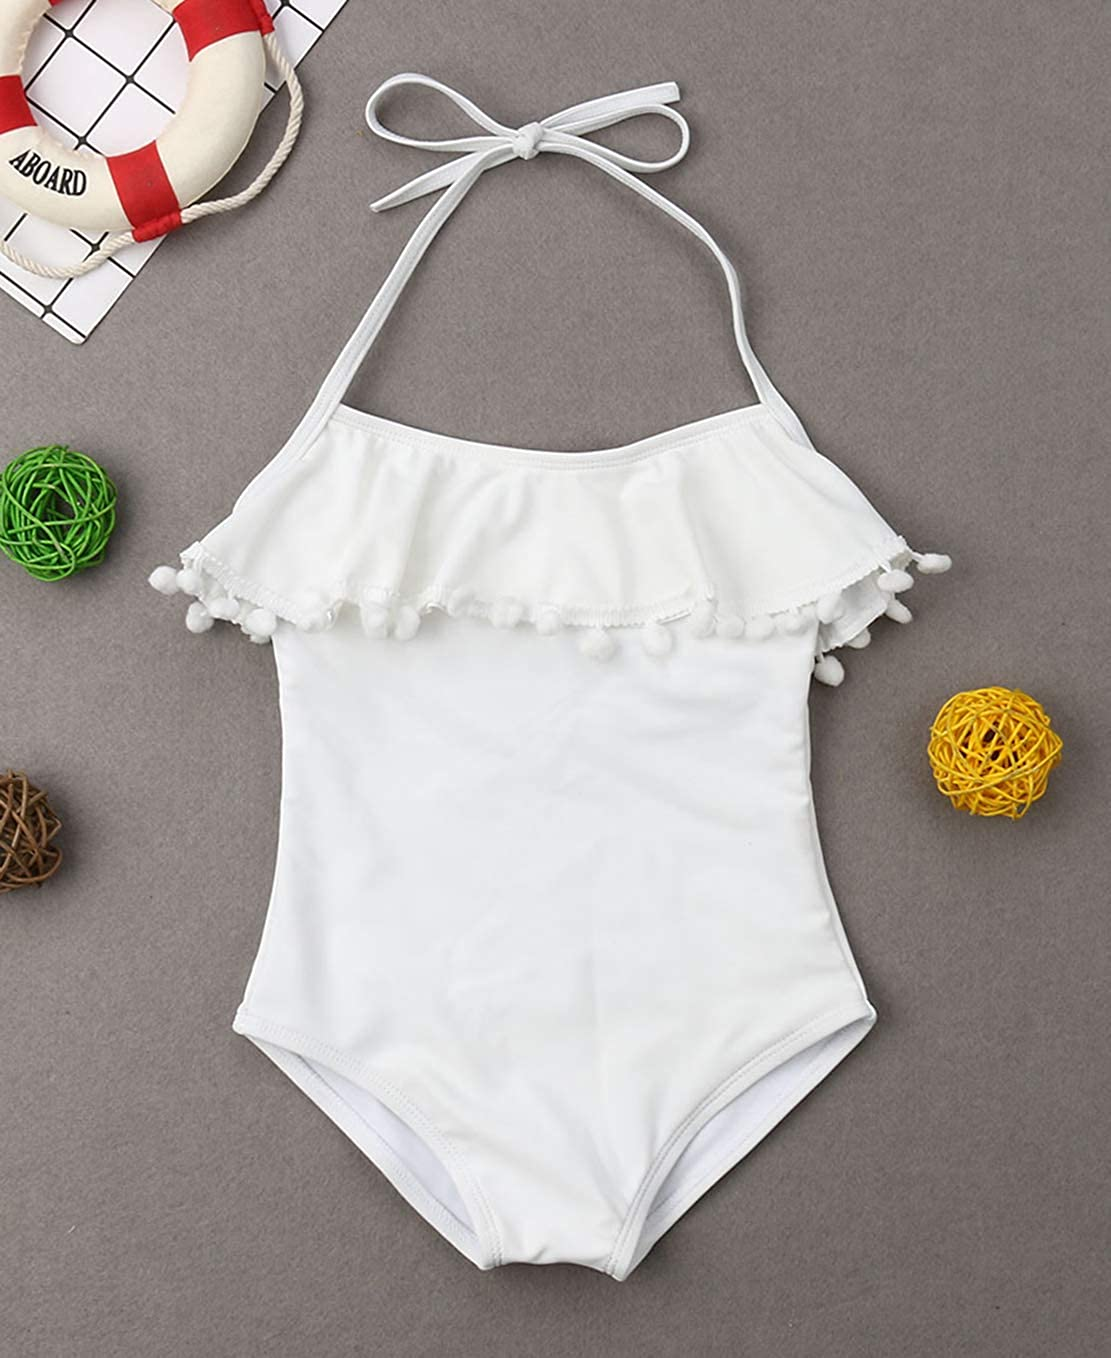 Family Matching Solid Color Lace Up Halter Neck Bathing Suit Mommy/&Me Spaghetti Straps Tassels Swimsuit